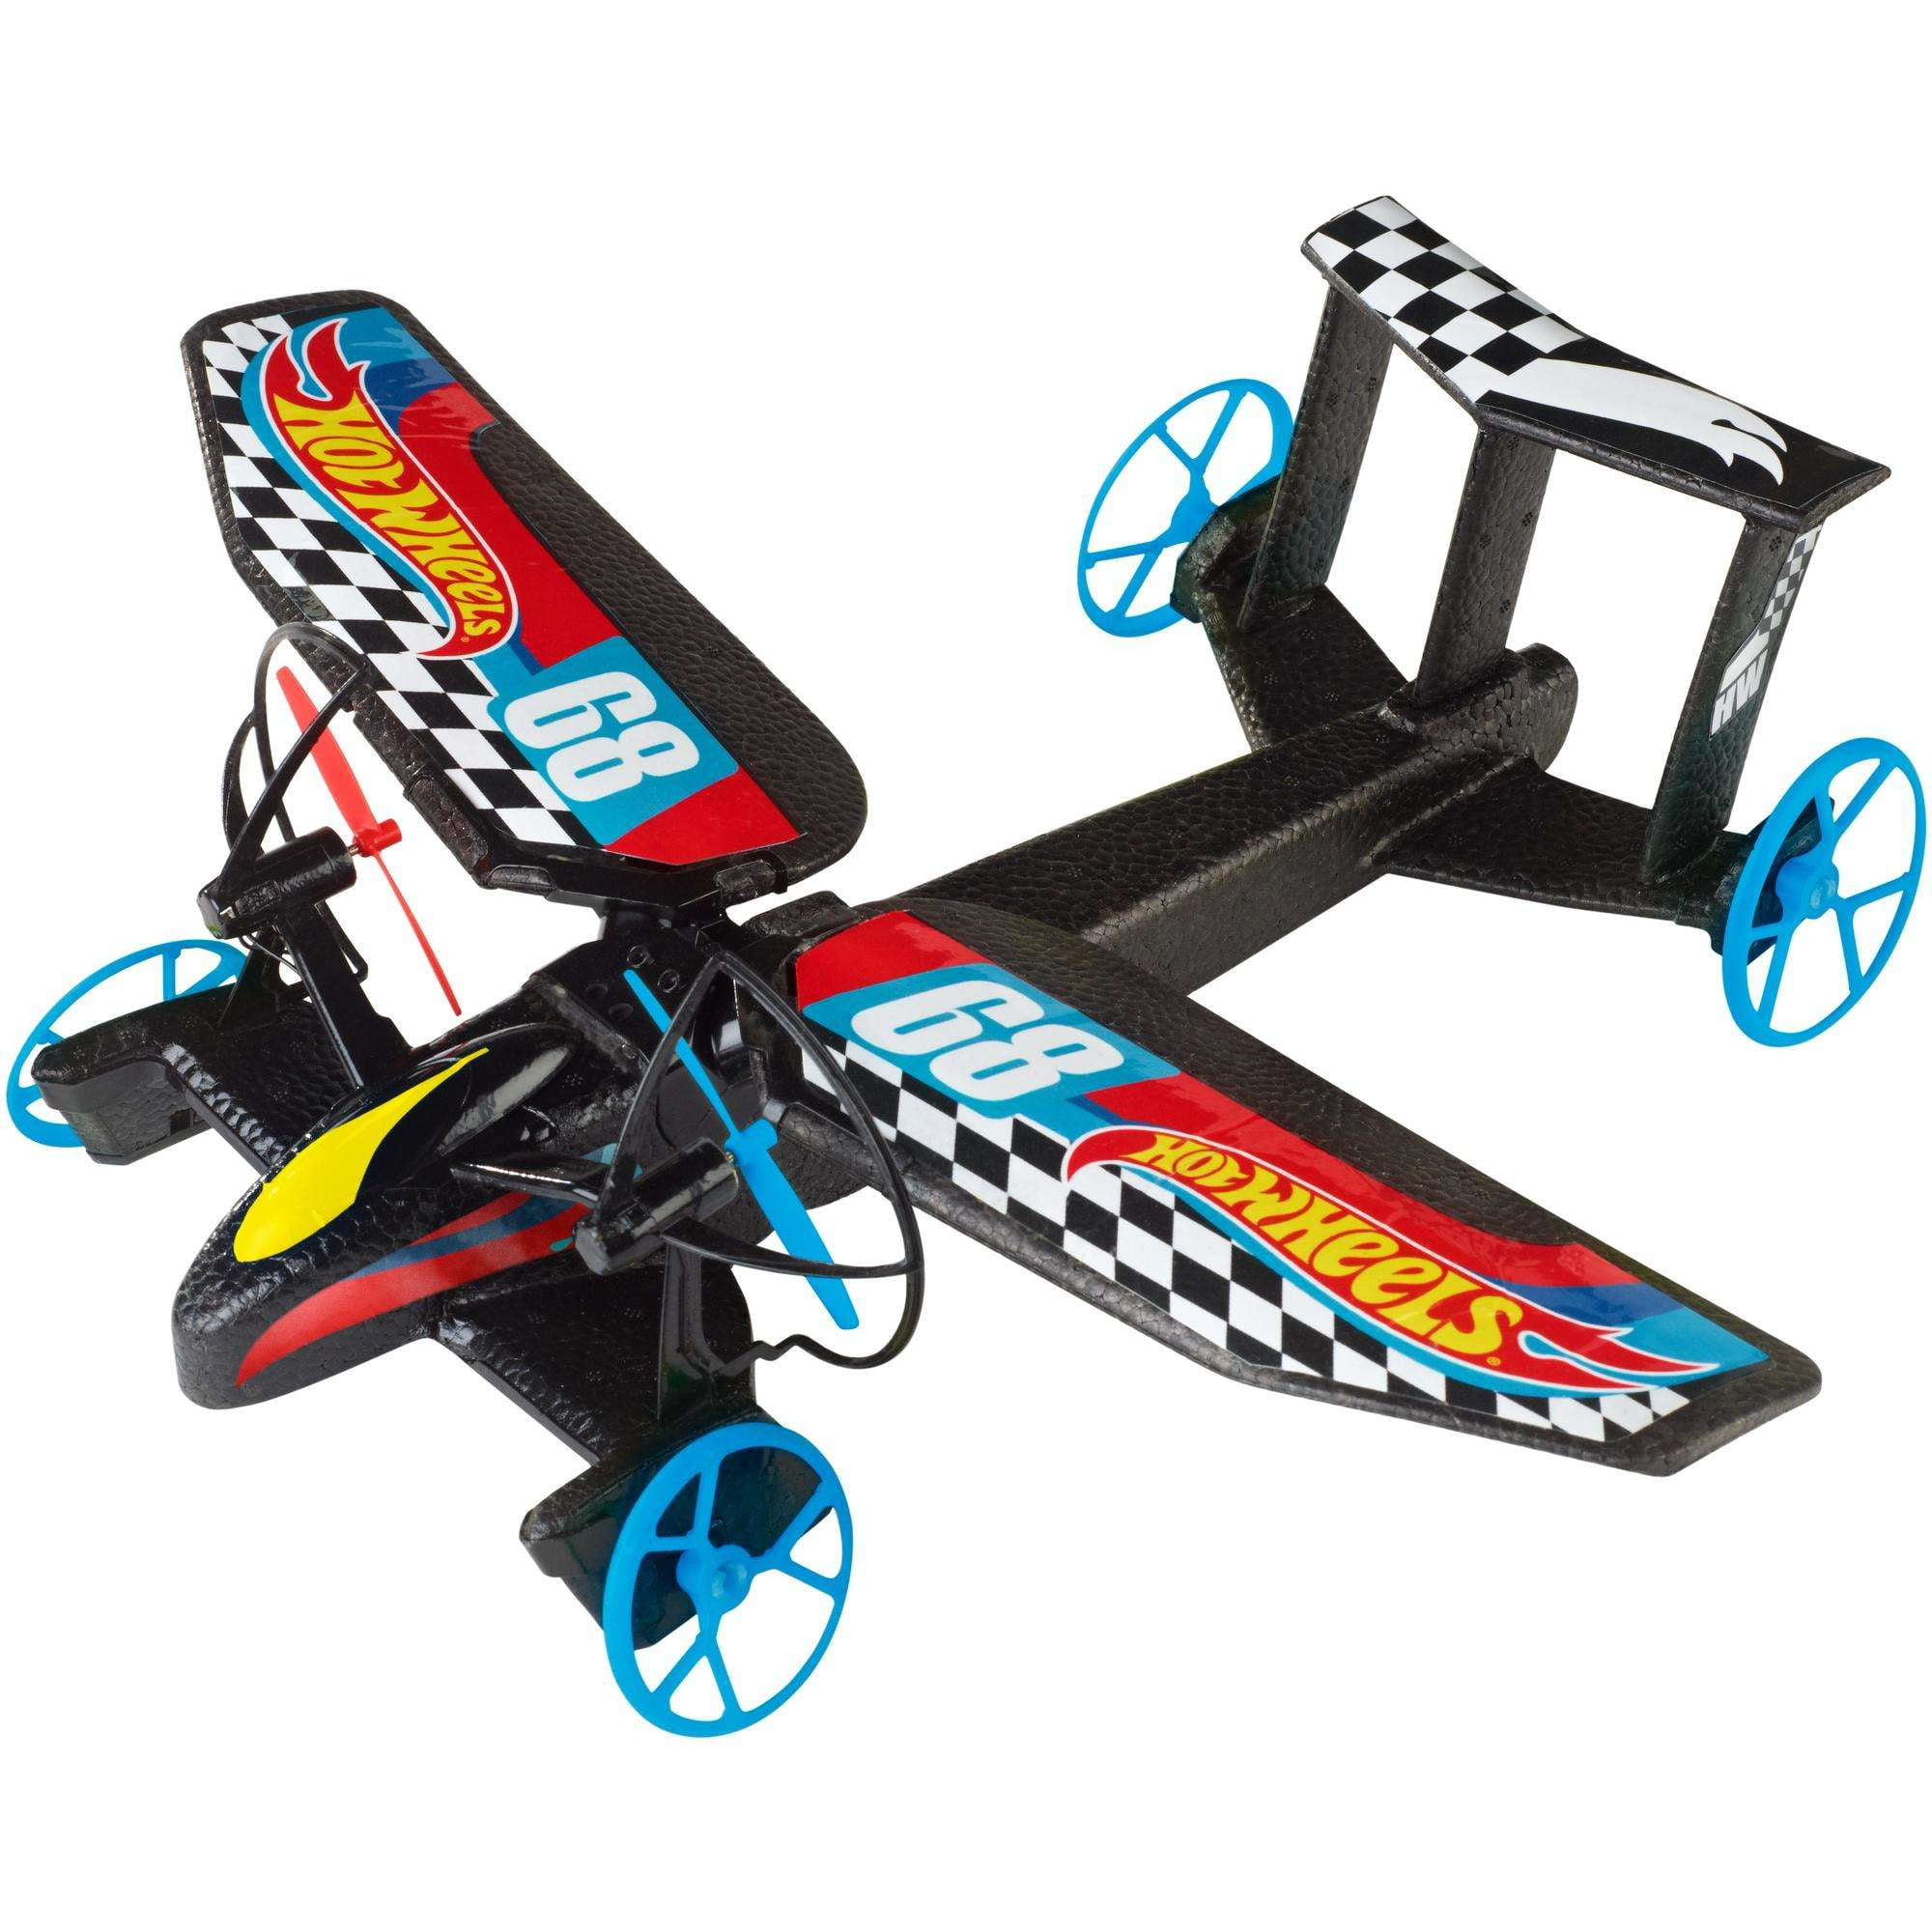 Hot Wheels RC Sky Shock (Race Vehicle) by Mattel